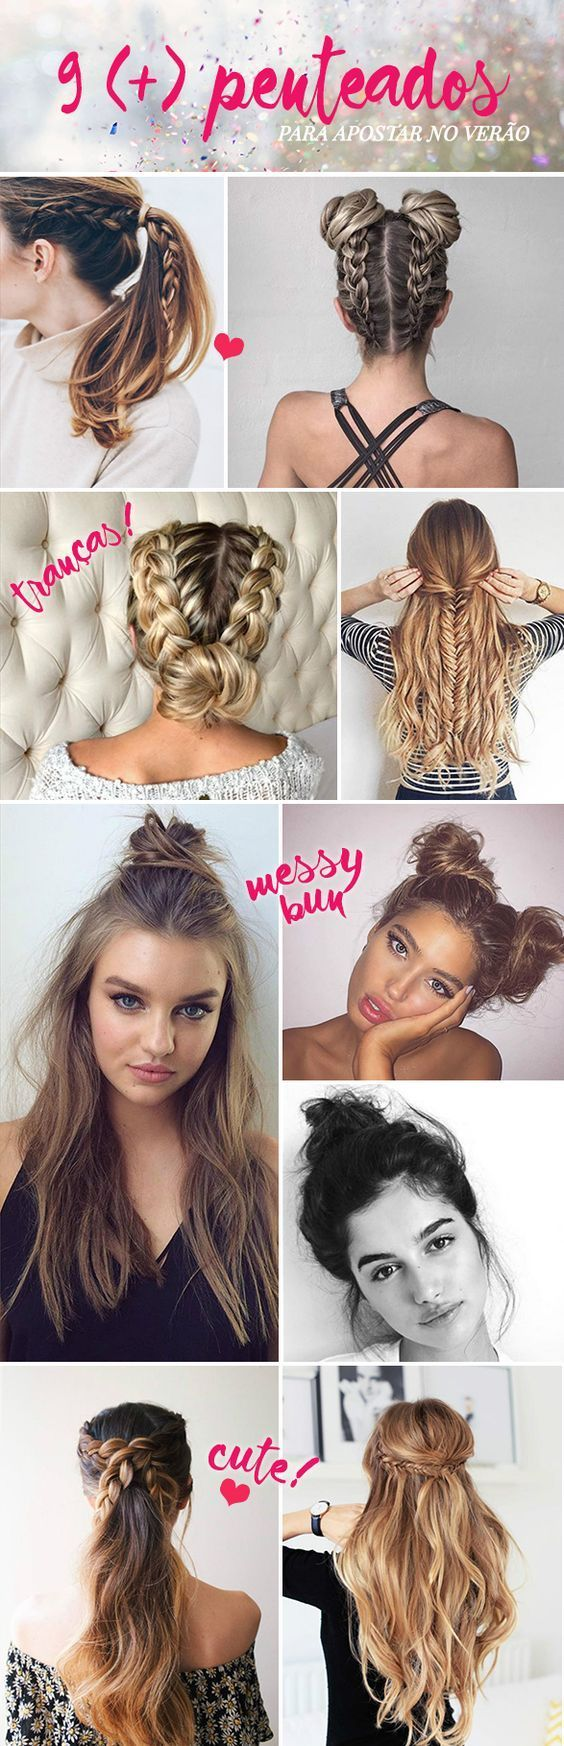 Awesome Hairstyle tips to get inspired this summer #CoolStuff